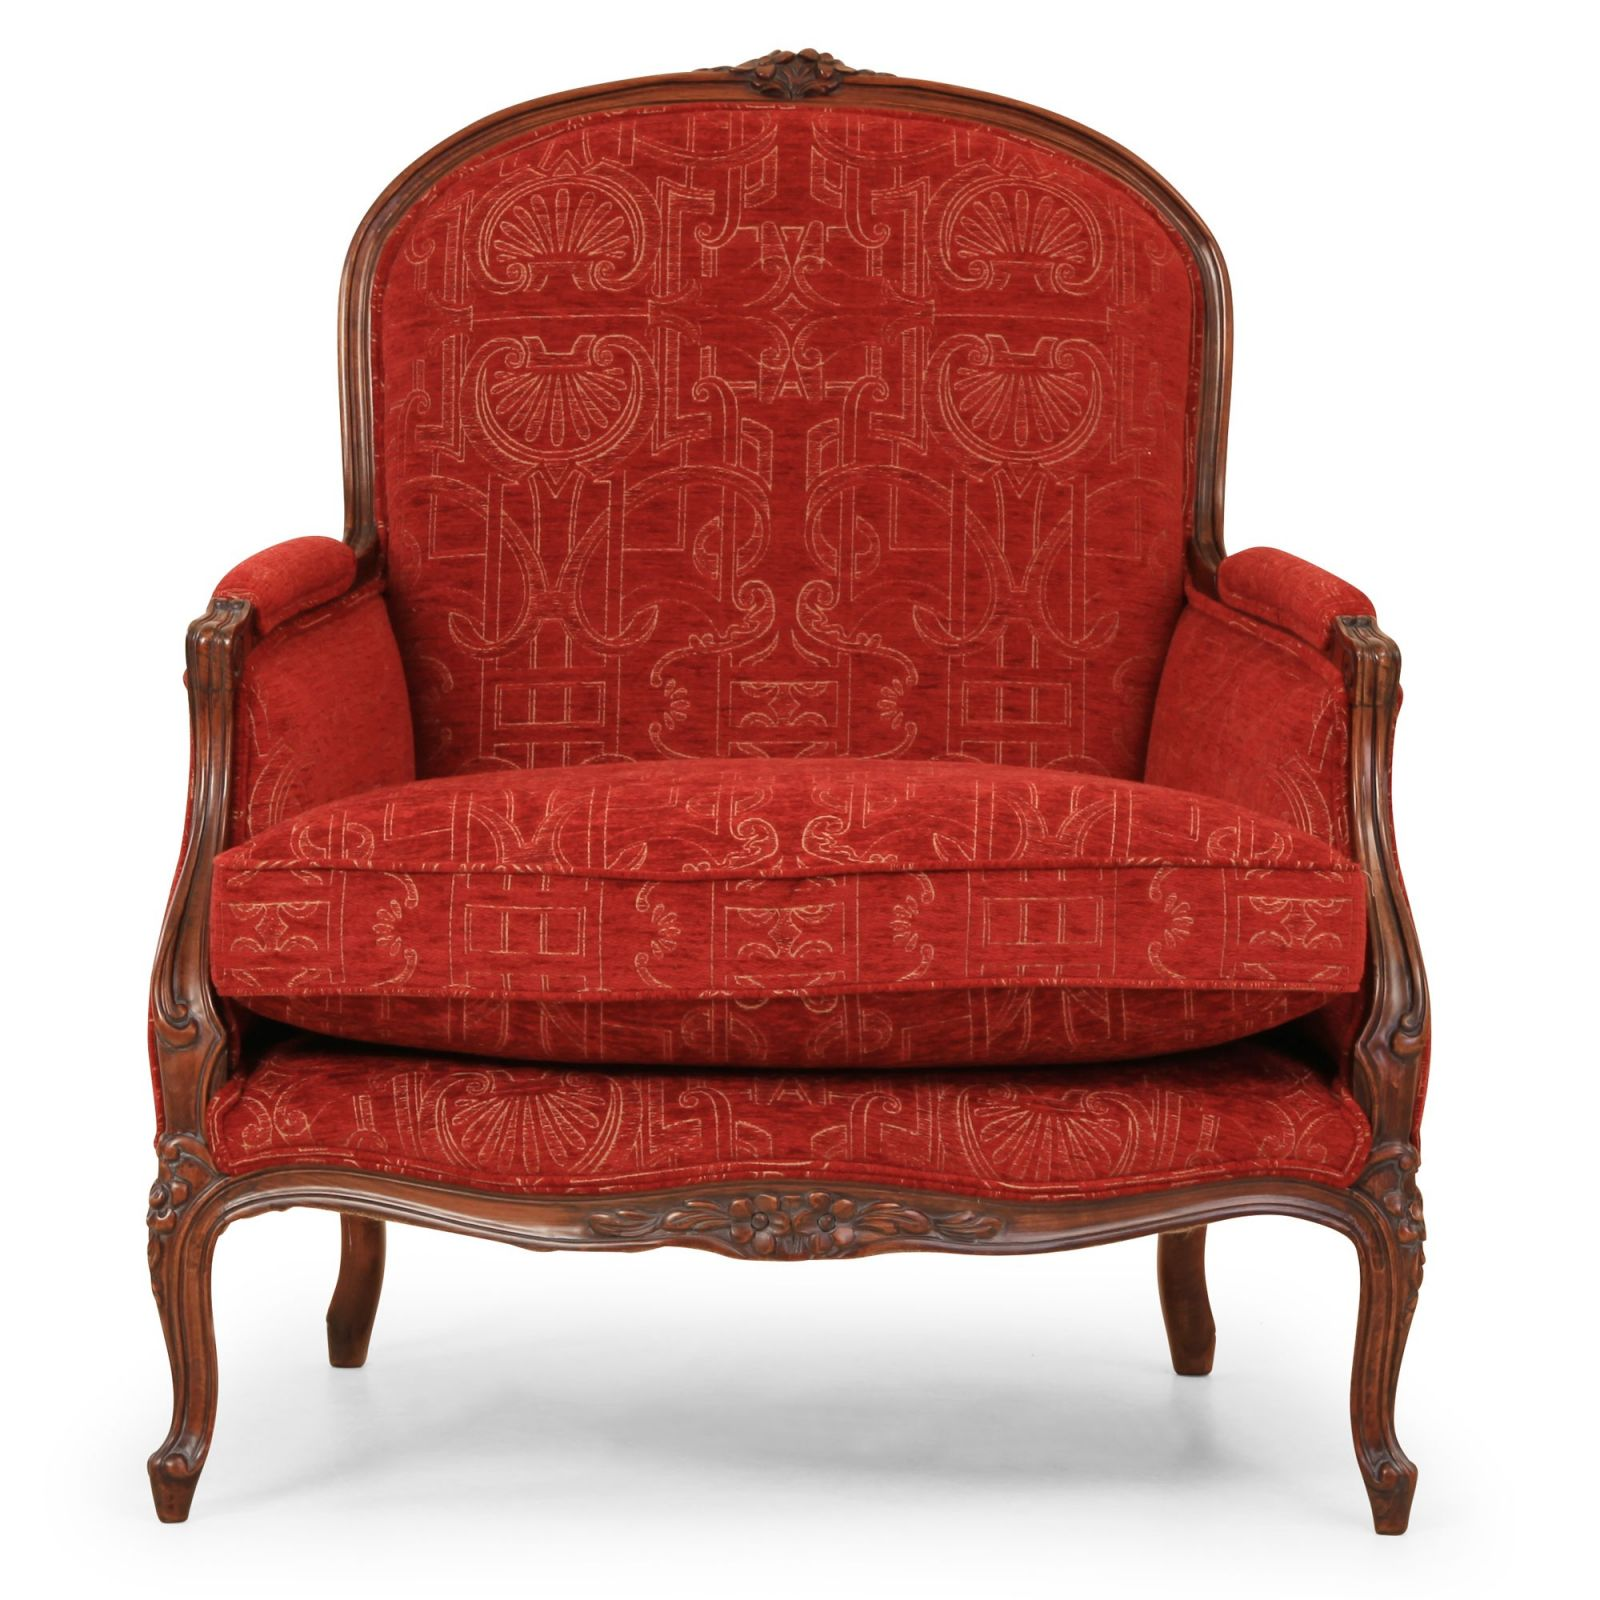 Naples chair in red chenille